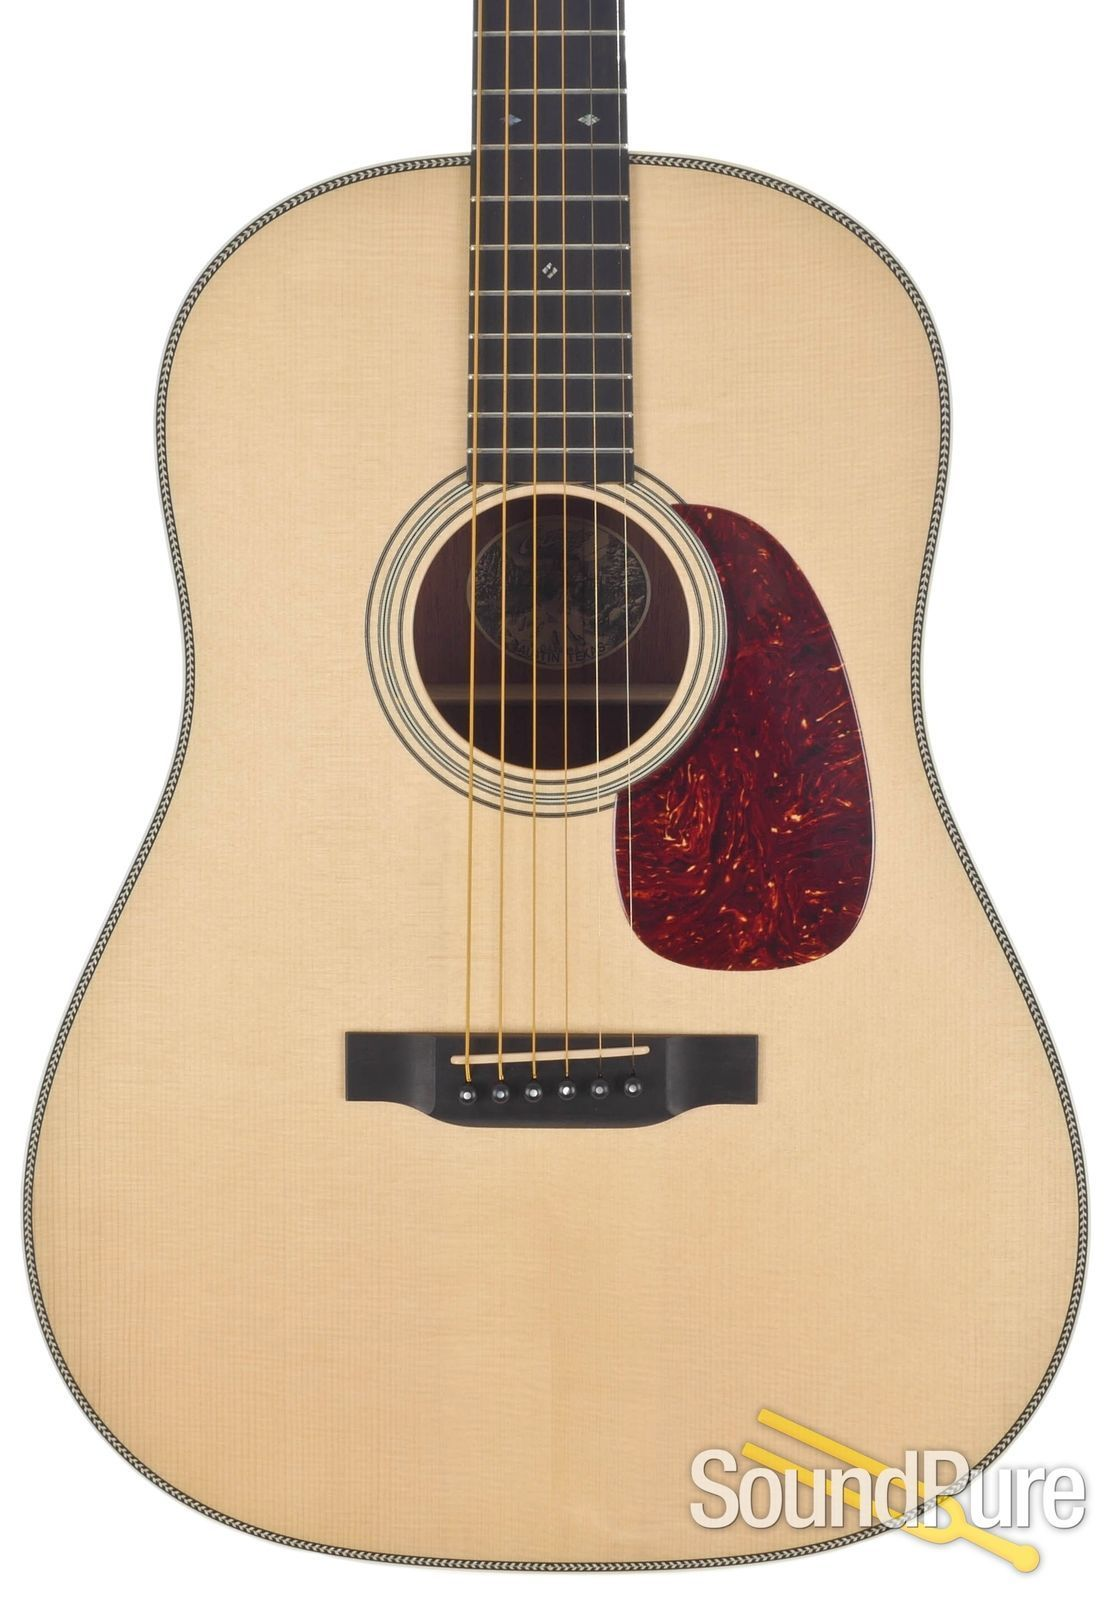 Collings Ds2ha Natural Acoustic Guitar 17280 Used Acoustic Acoustic Guitar Guitar